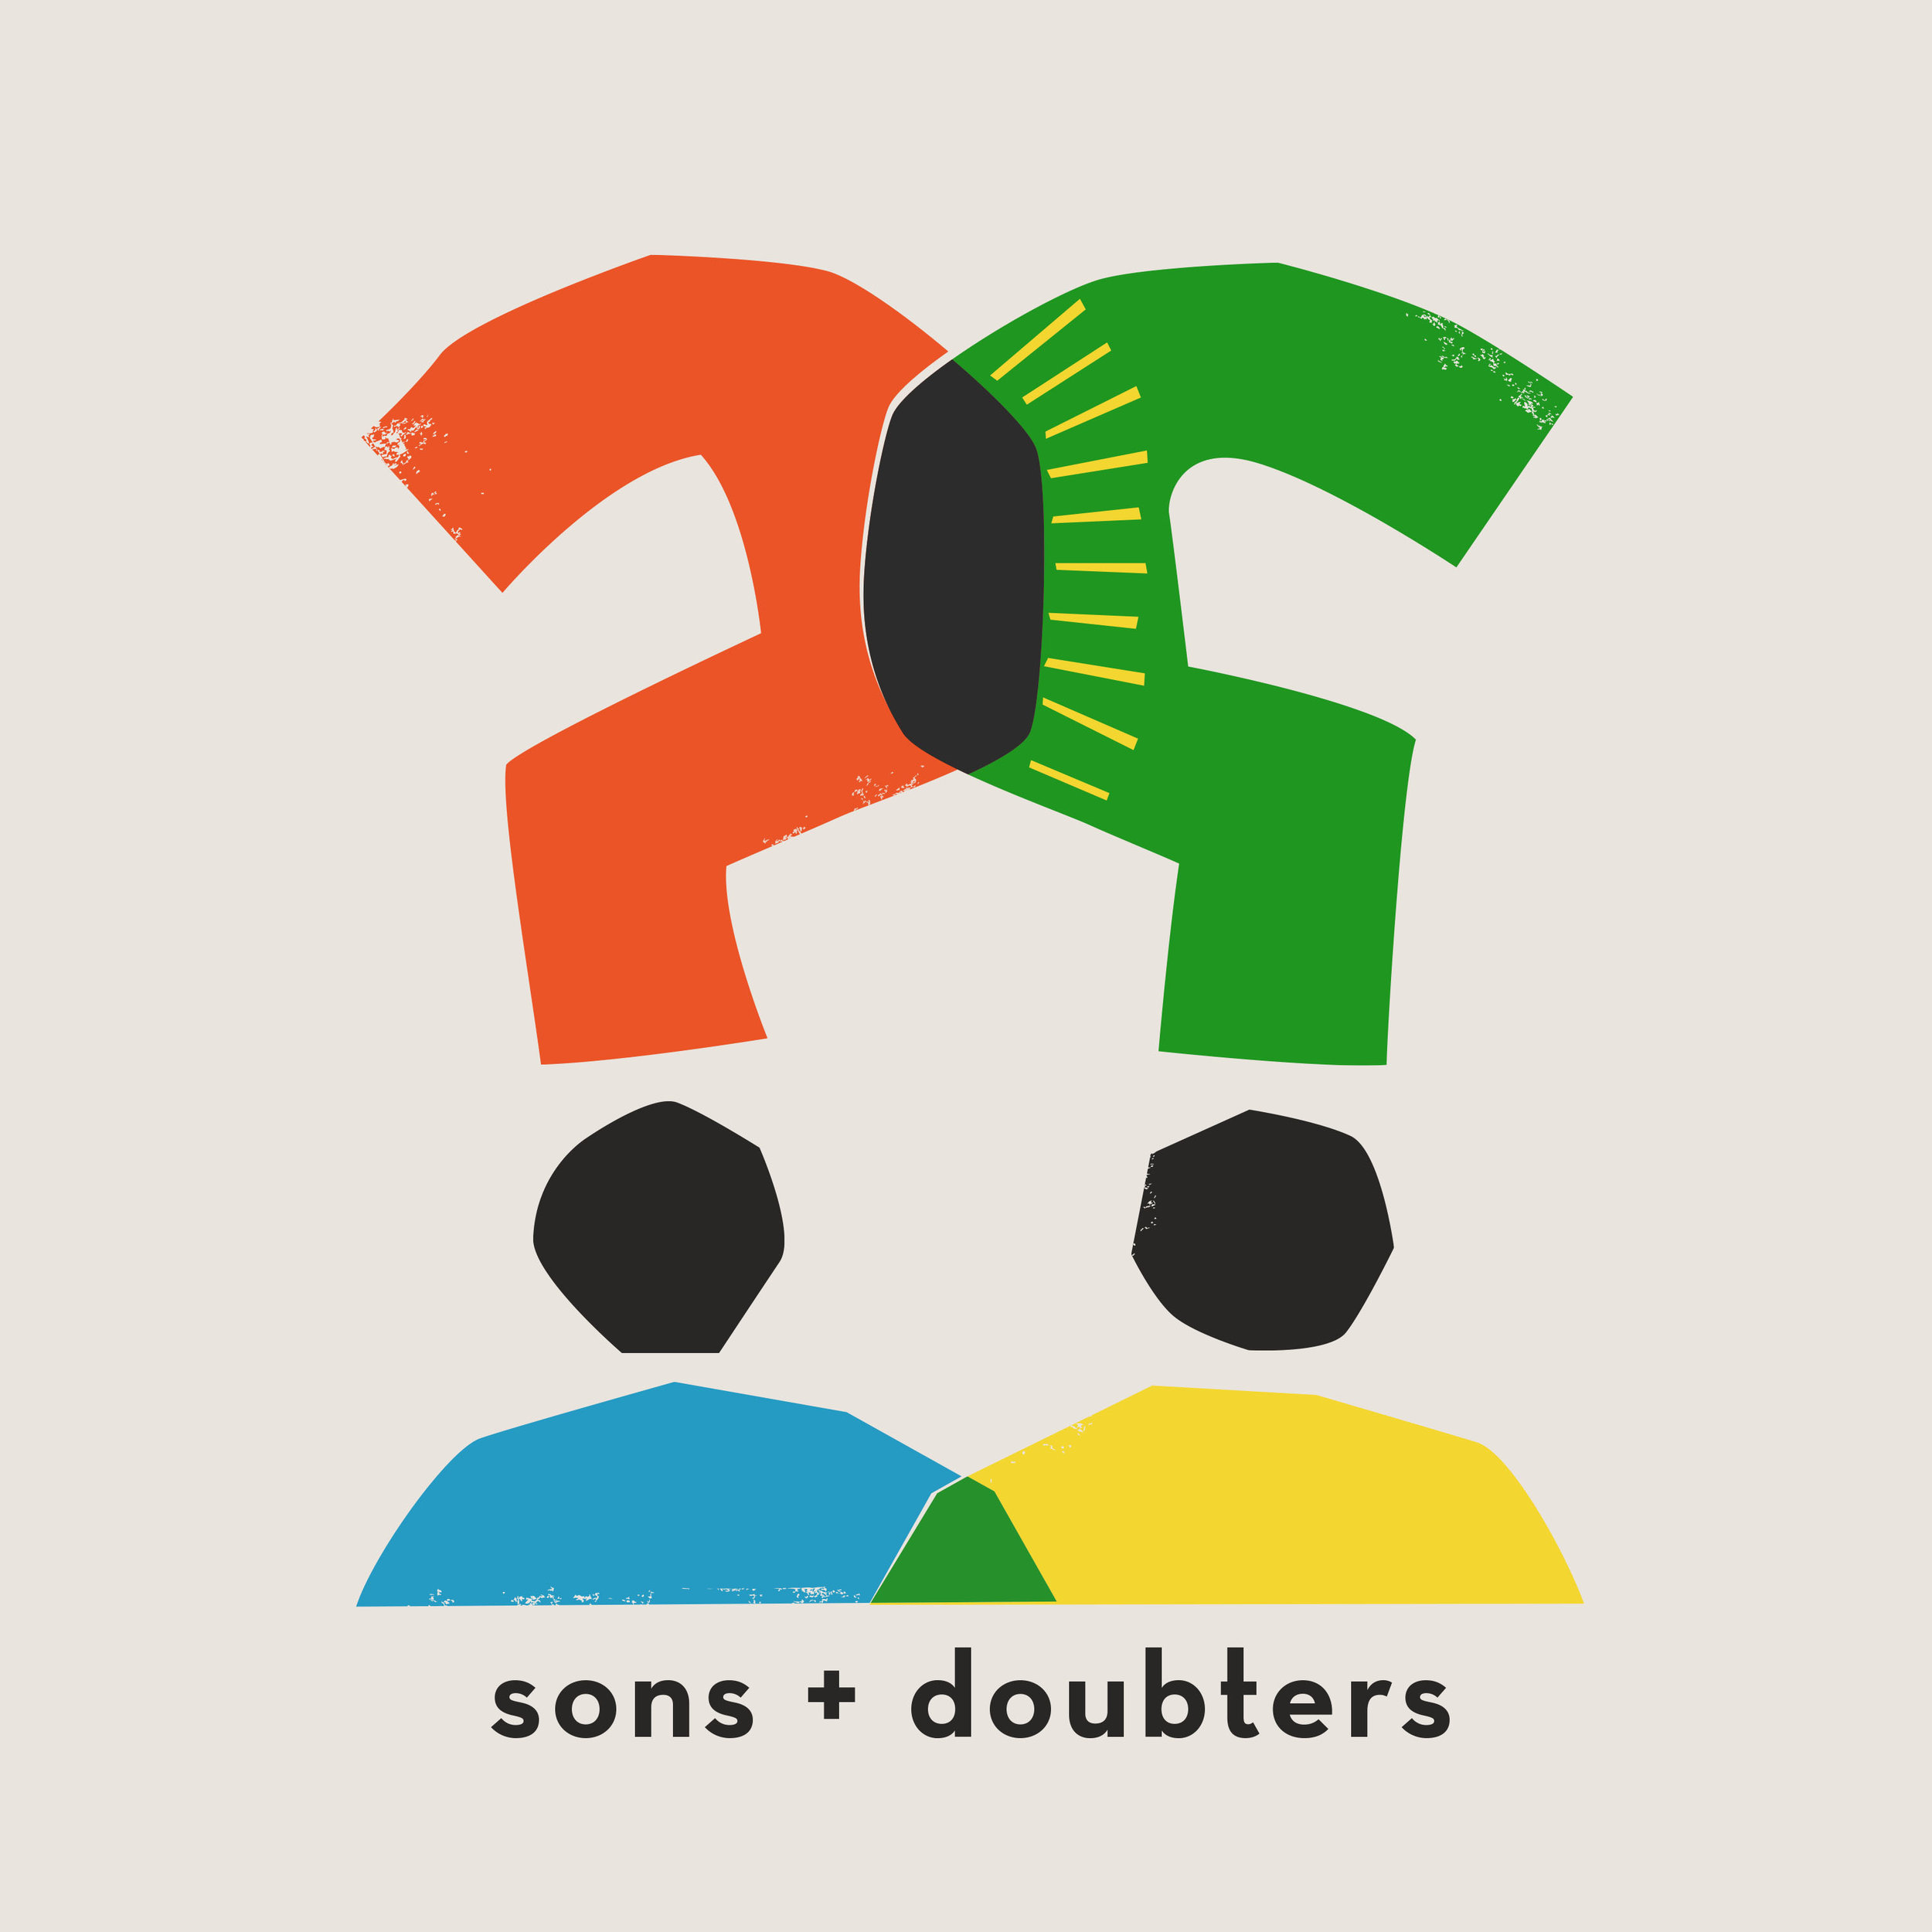 Sons & Doubters - An honest conversation about the times when faith is difficult and doubt is easy, with hosts, Aaron Hale & Luke Brawner. Returning for Season 3 in June 2018, but for now you can hear the latest episode below!